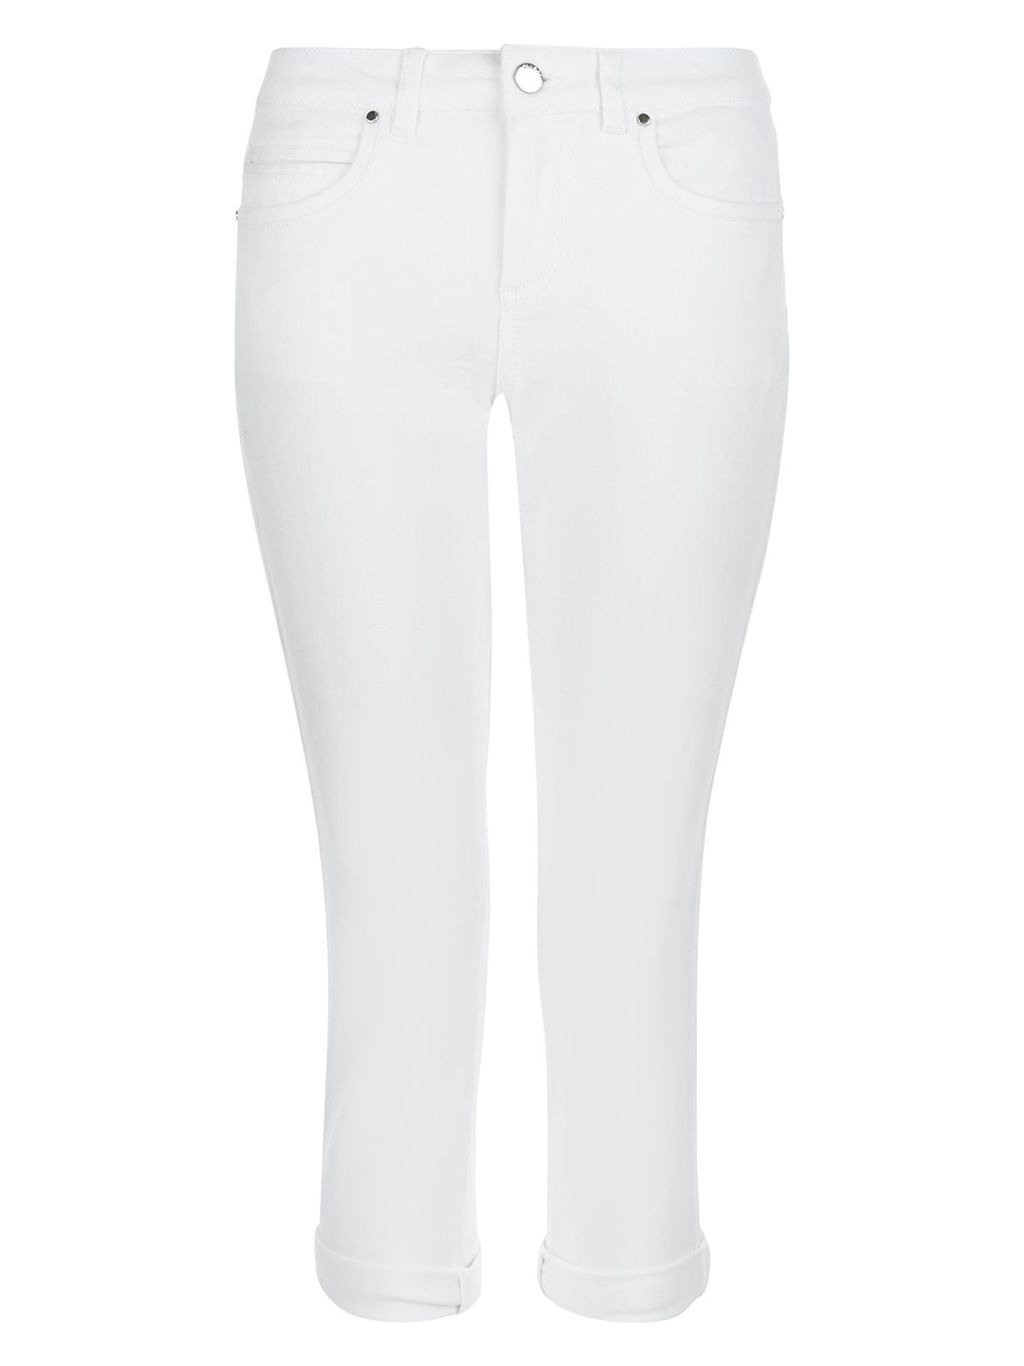 Isadora Capri, White - style: skinny leg; pattern: plain; pocket detail: traditional 5 pocket; waist: mid/regular rise; predominant colour: white; occasions: casual; length: calf length; fibres: cotton - stretch; texture group: denim; pattern type: fabric; season: s/s 2016; wardrobe: highlight